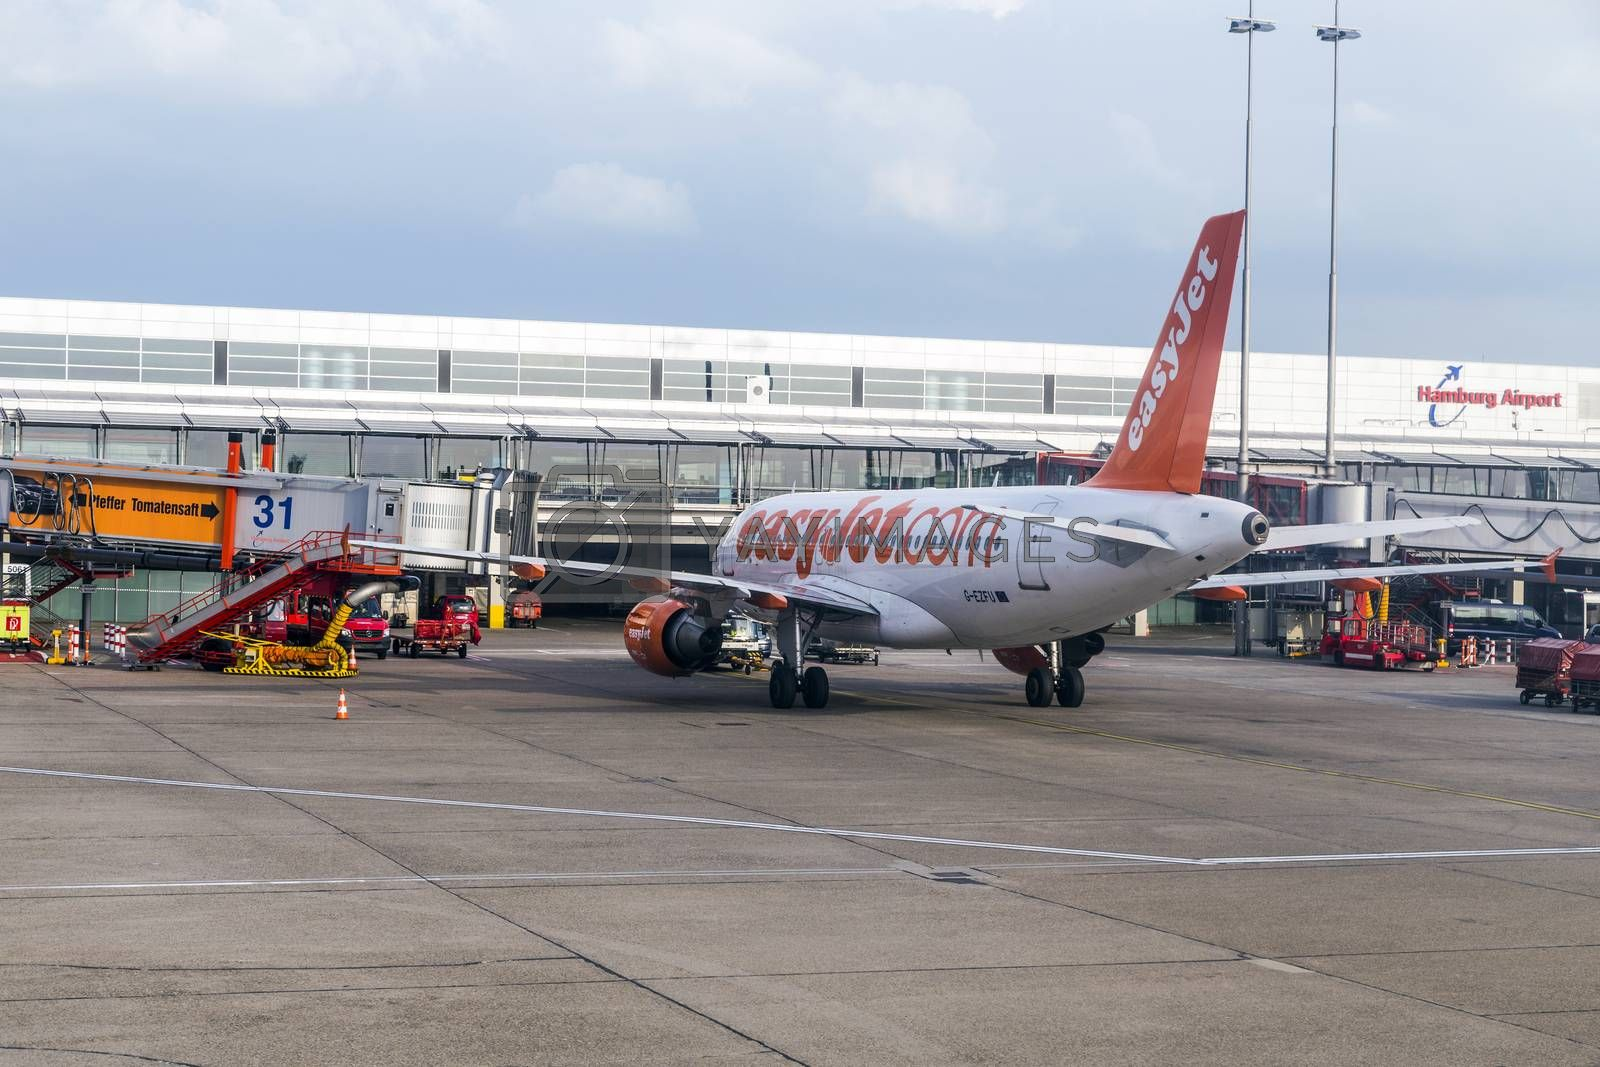 HAMBURG, GERMANY - MAY 22, 2014: Aircrafts at the gate in the modern Terminal 2  in Hamburg, Germany. Terminal 2 was completed in 1993 and houses Lufthansa and other Star Alliance partners.